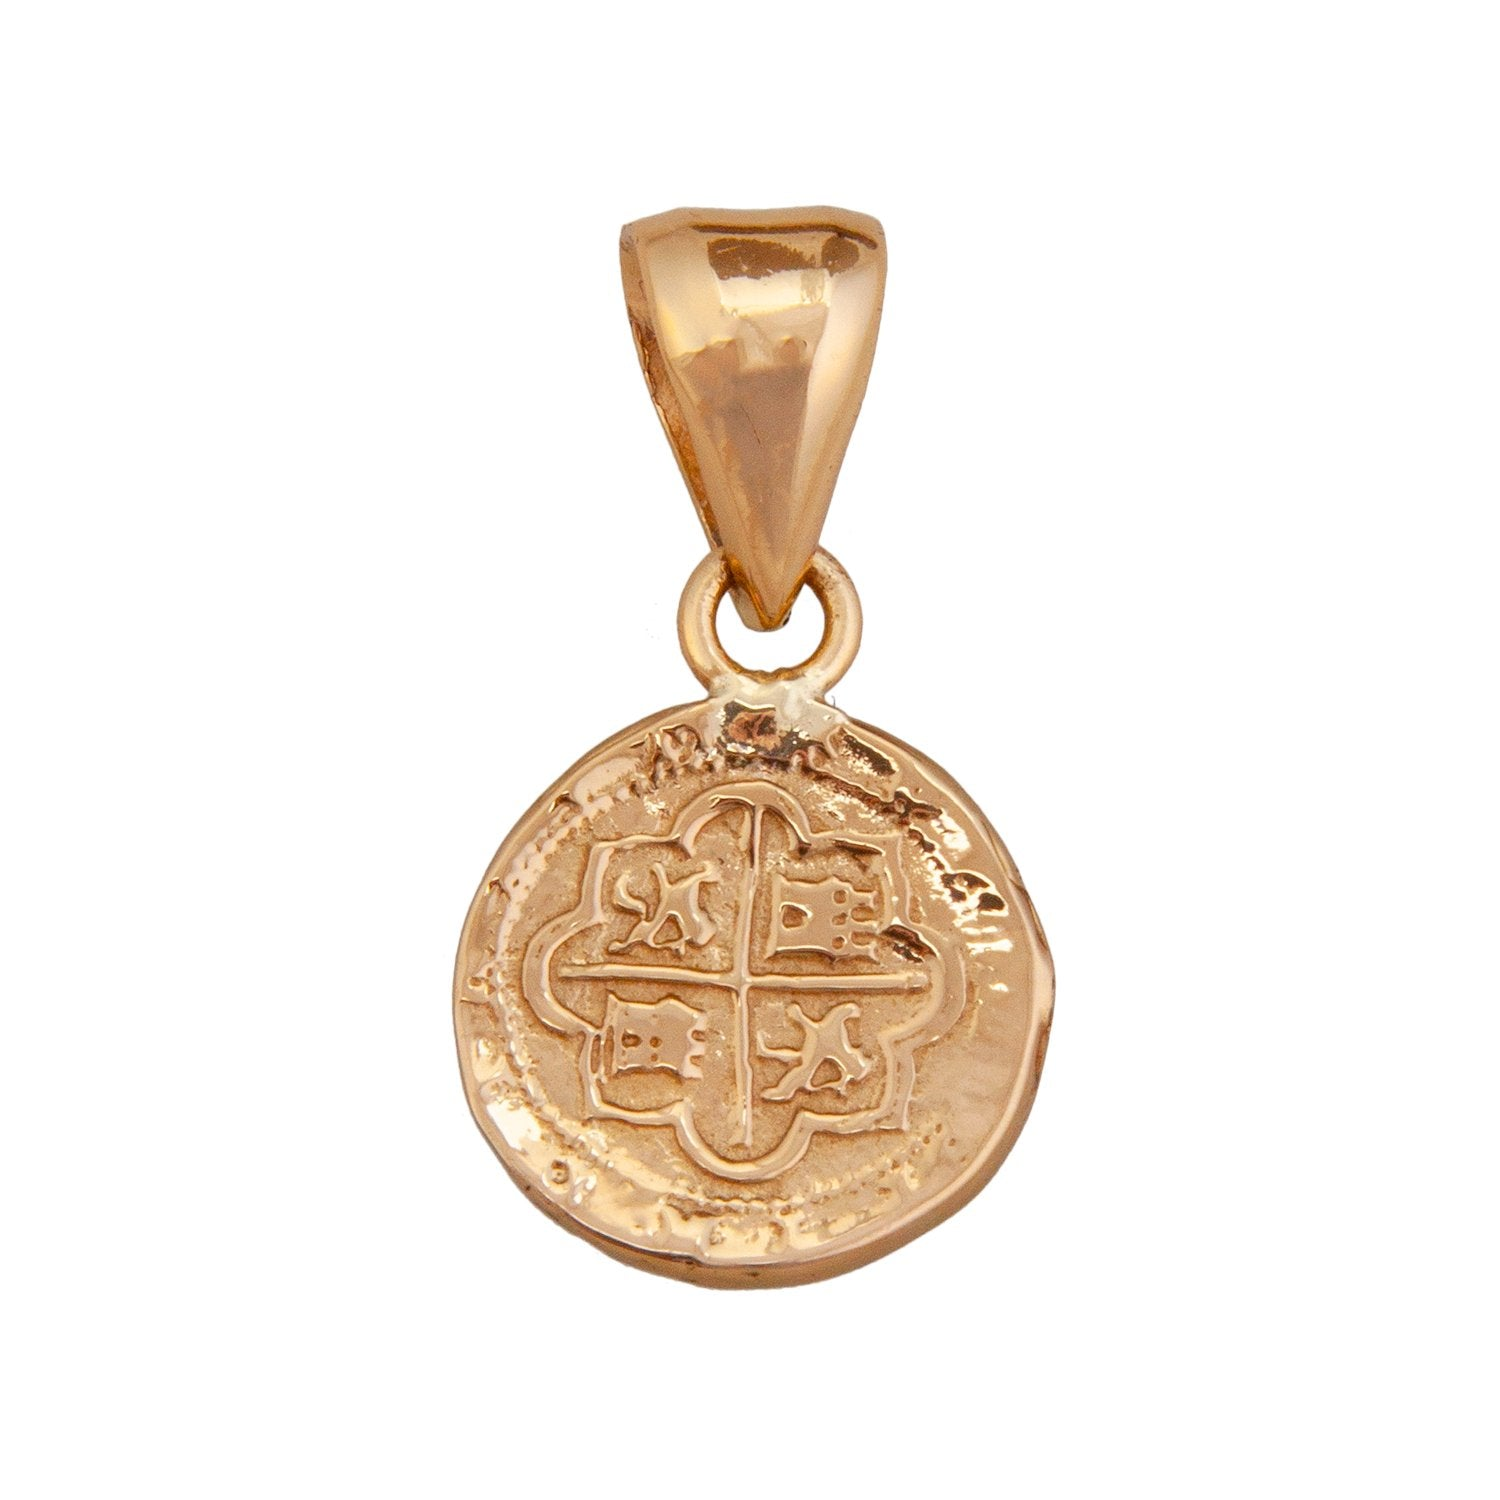 Alchemia Replica Spanish Coin Pendant | Charles Albert Jewelry